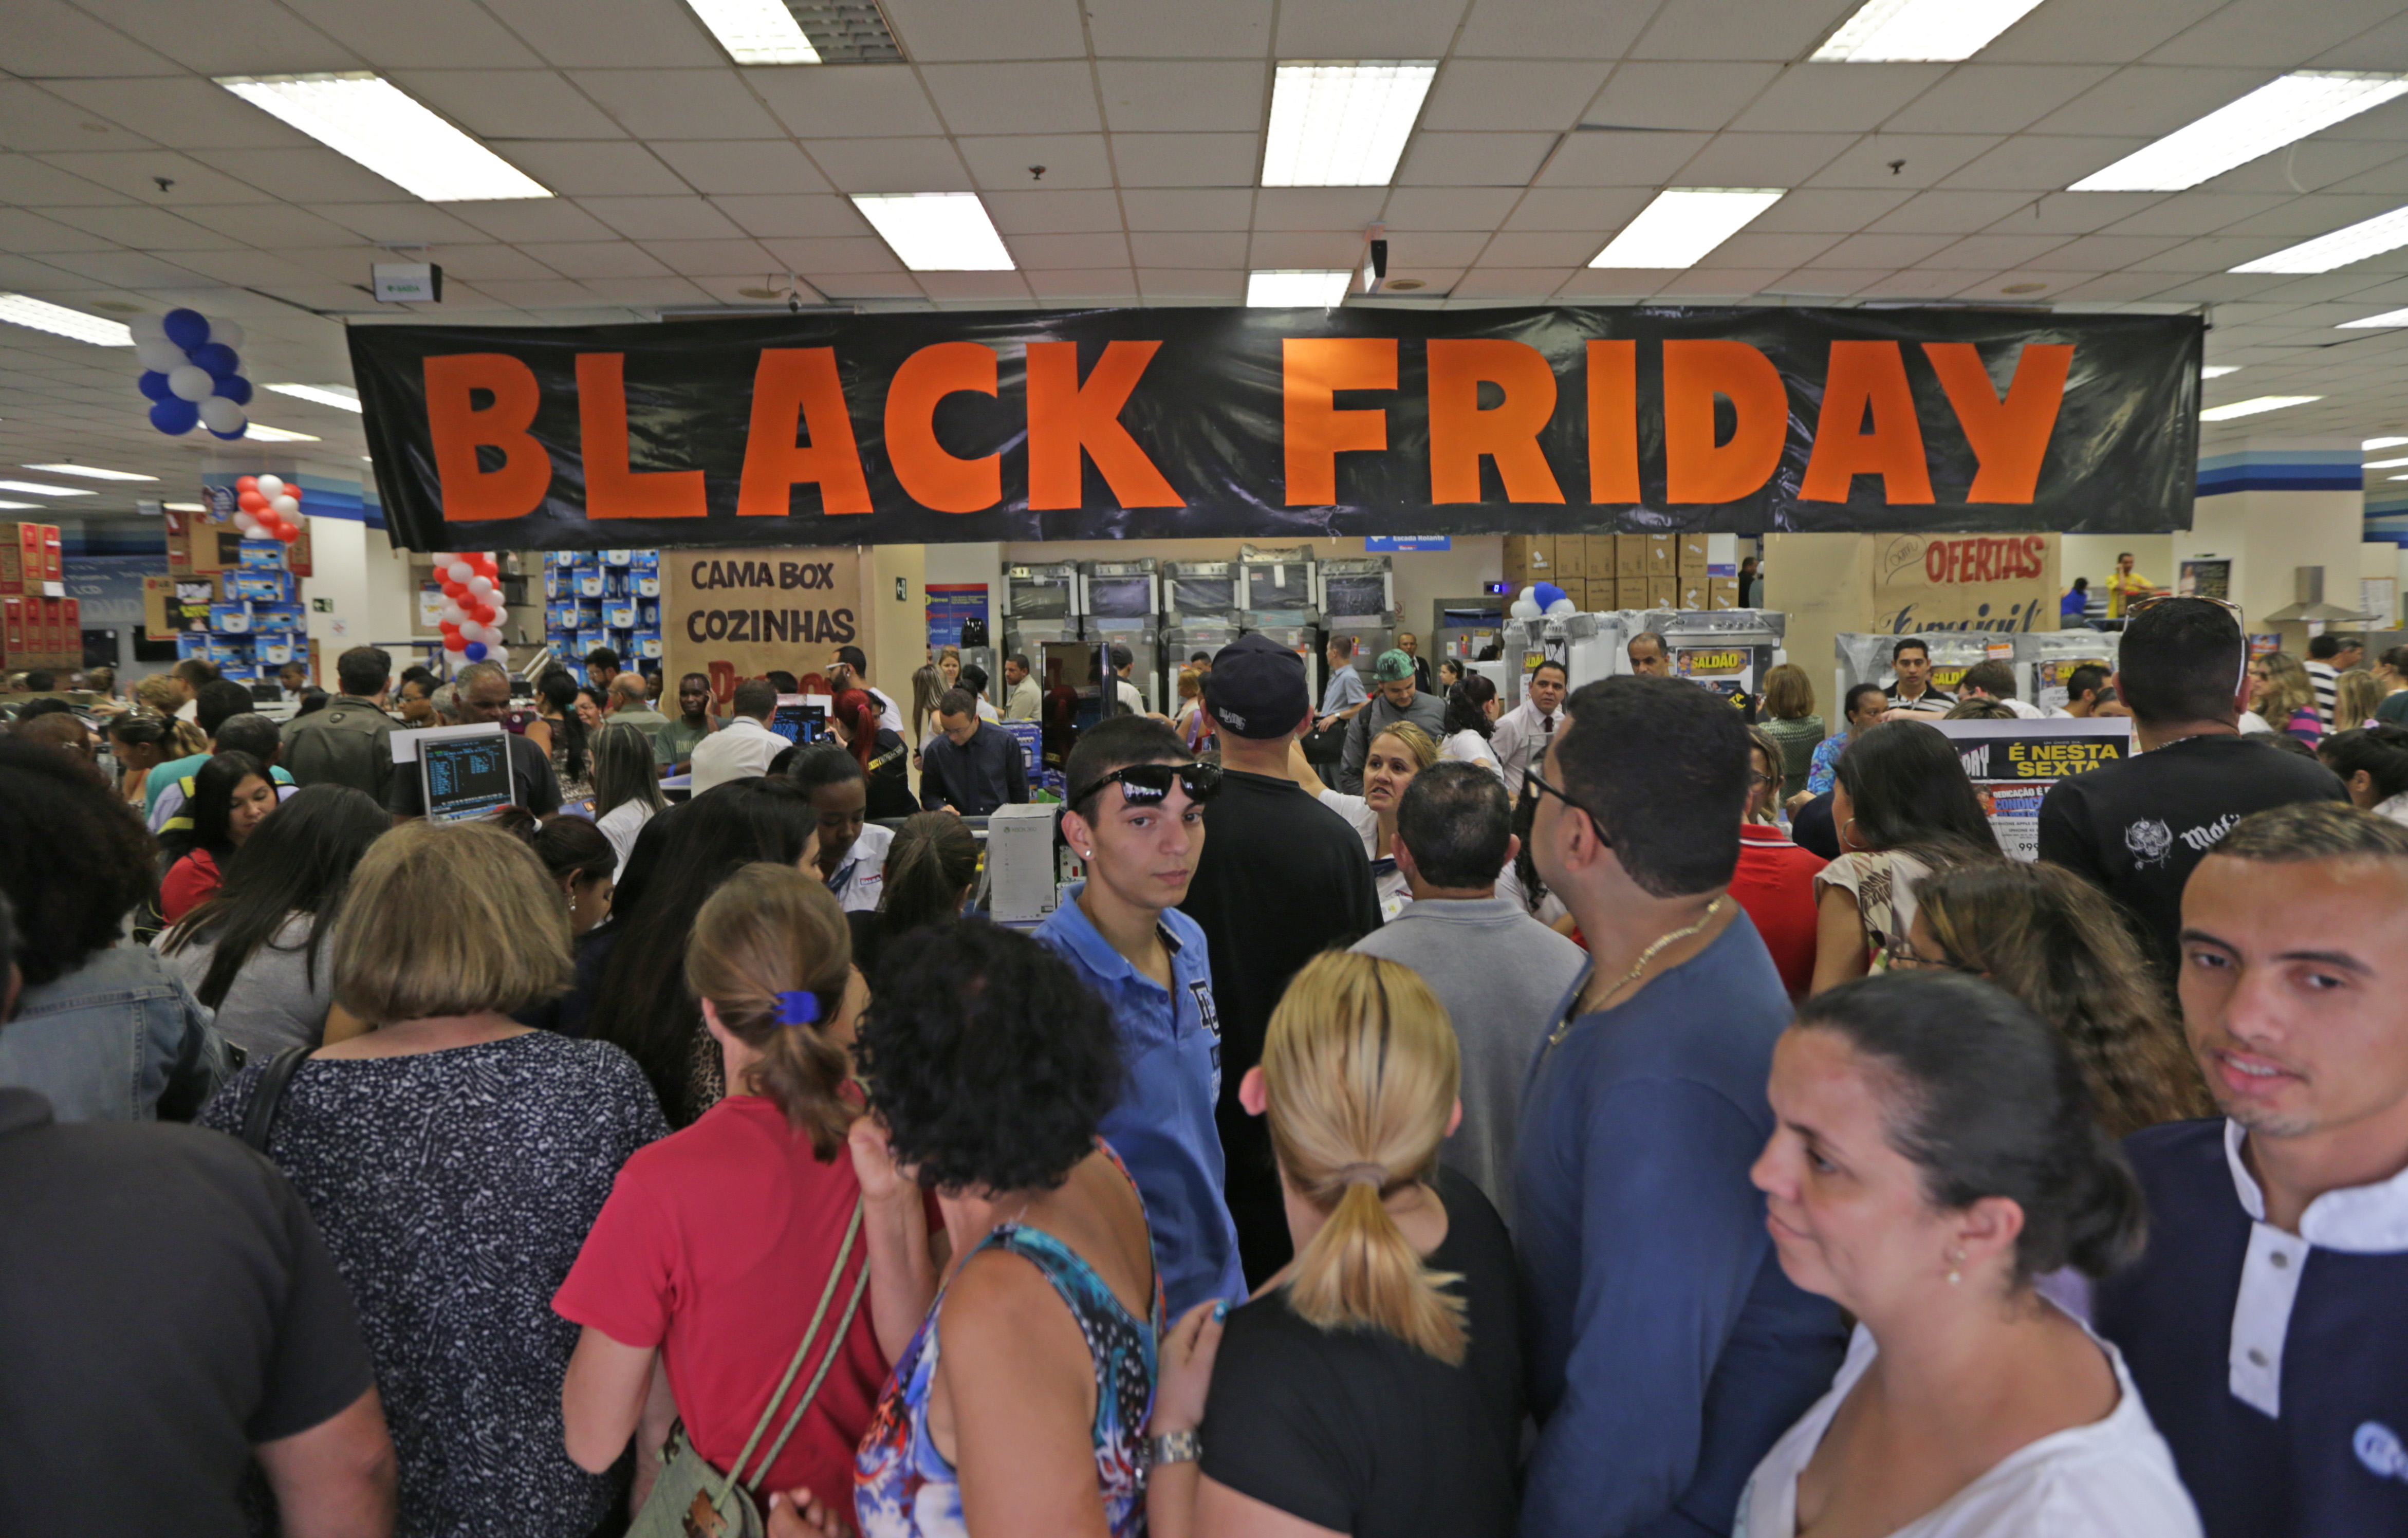 Black Friday 2015 supera previsões e fatura R$ 1,5 bilhão no país